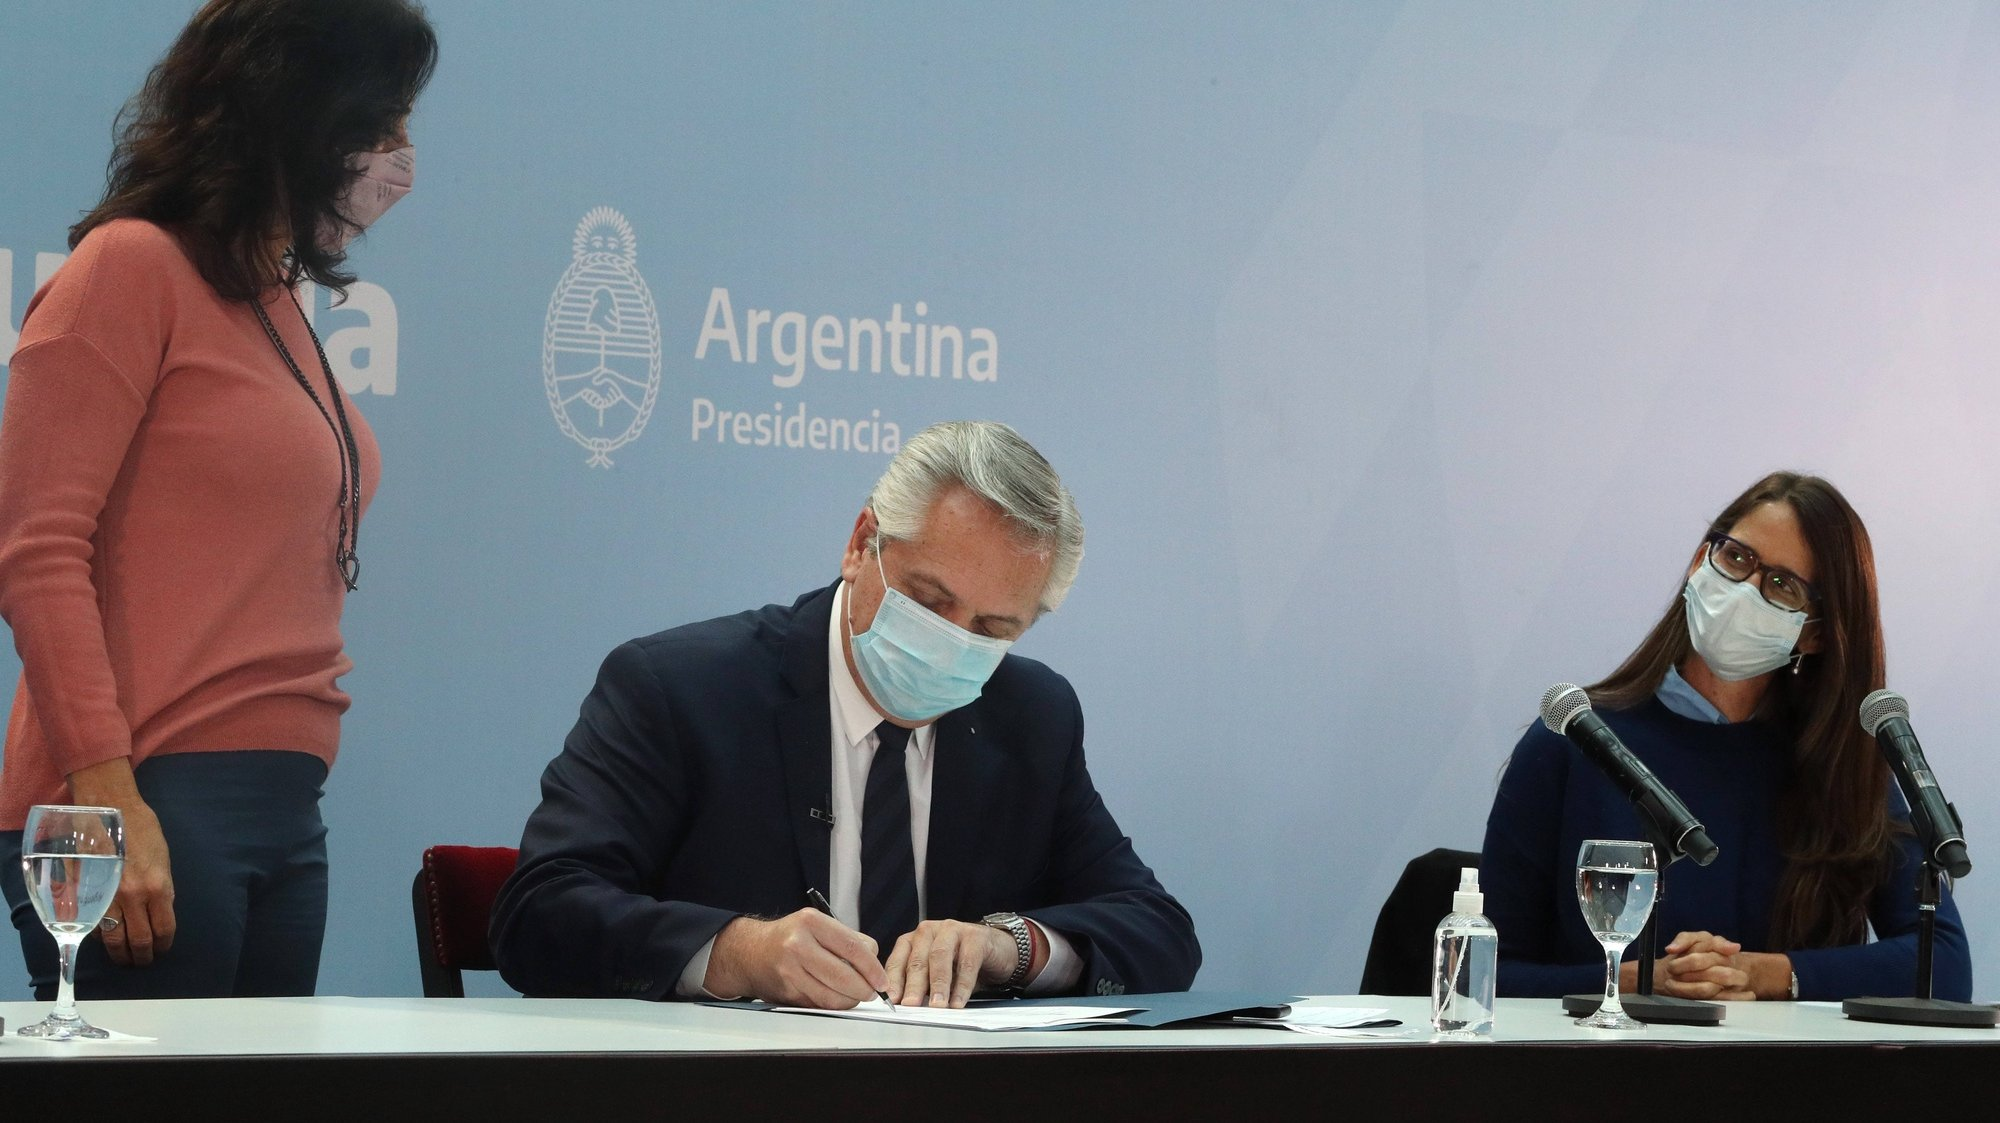 epa09329420 A handout photo made available by the Argentinian Presidency that shows President Alberto Fernandez (C) while signing the law that protects the labor quota of transgender public workers, in Buenos Aires, Argentina, 07 July 2021. The Government of Argentina promulgated this 07 July the law that establishes a labor quota for transvestites, transsexuals and transgender people in the public sector, approved at the end of last June, in an act that was attended by President Alberto Fernandez.  EPA/Argentinian Presidency / HANDOUT THIS IMAGE IS TO BE USED SOLELY TO ILLUSTRATE NEWS REPORTING OR COMMENTARY ON THE FACTS OR EVENTS DEPICTED IN THIS IMAGE WITH THE ORIGINAL TEXT (MANDATORY CREDIT) HANDOUT EDITORIAL USE ONLY/NO SALES